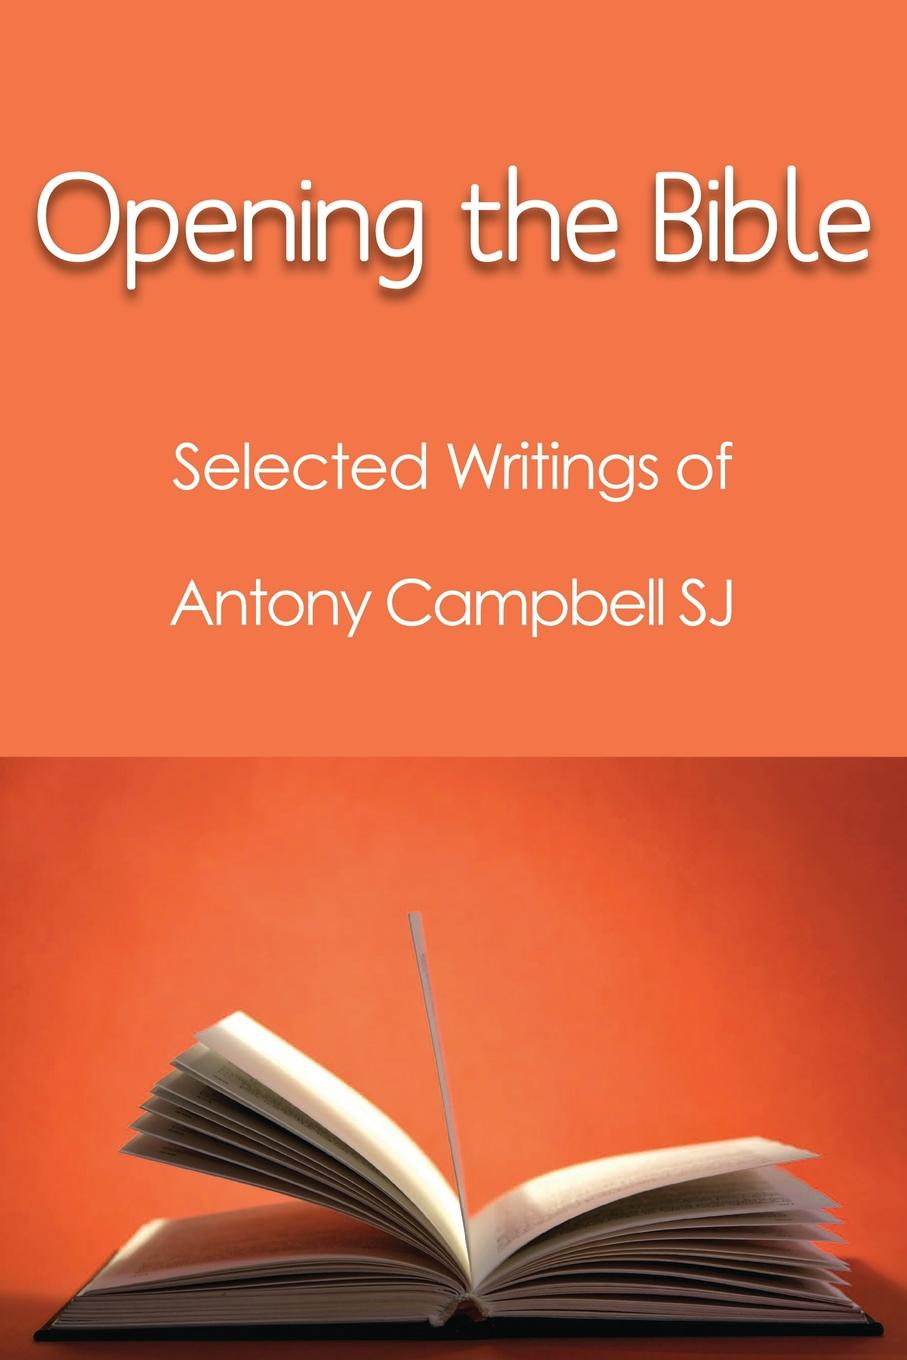 Antony Campbell Opening the Bible